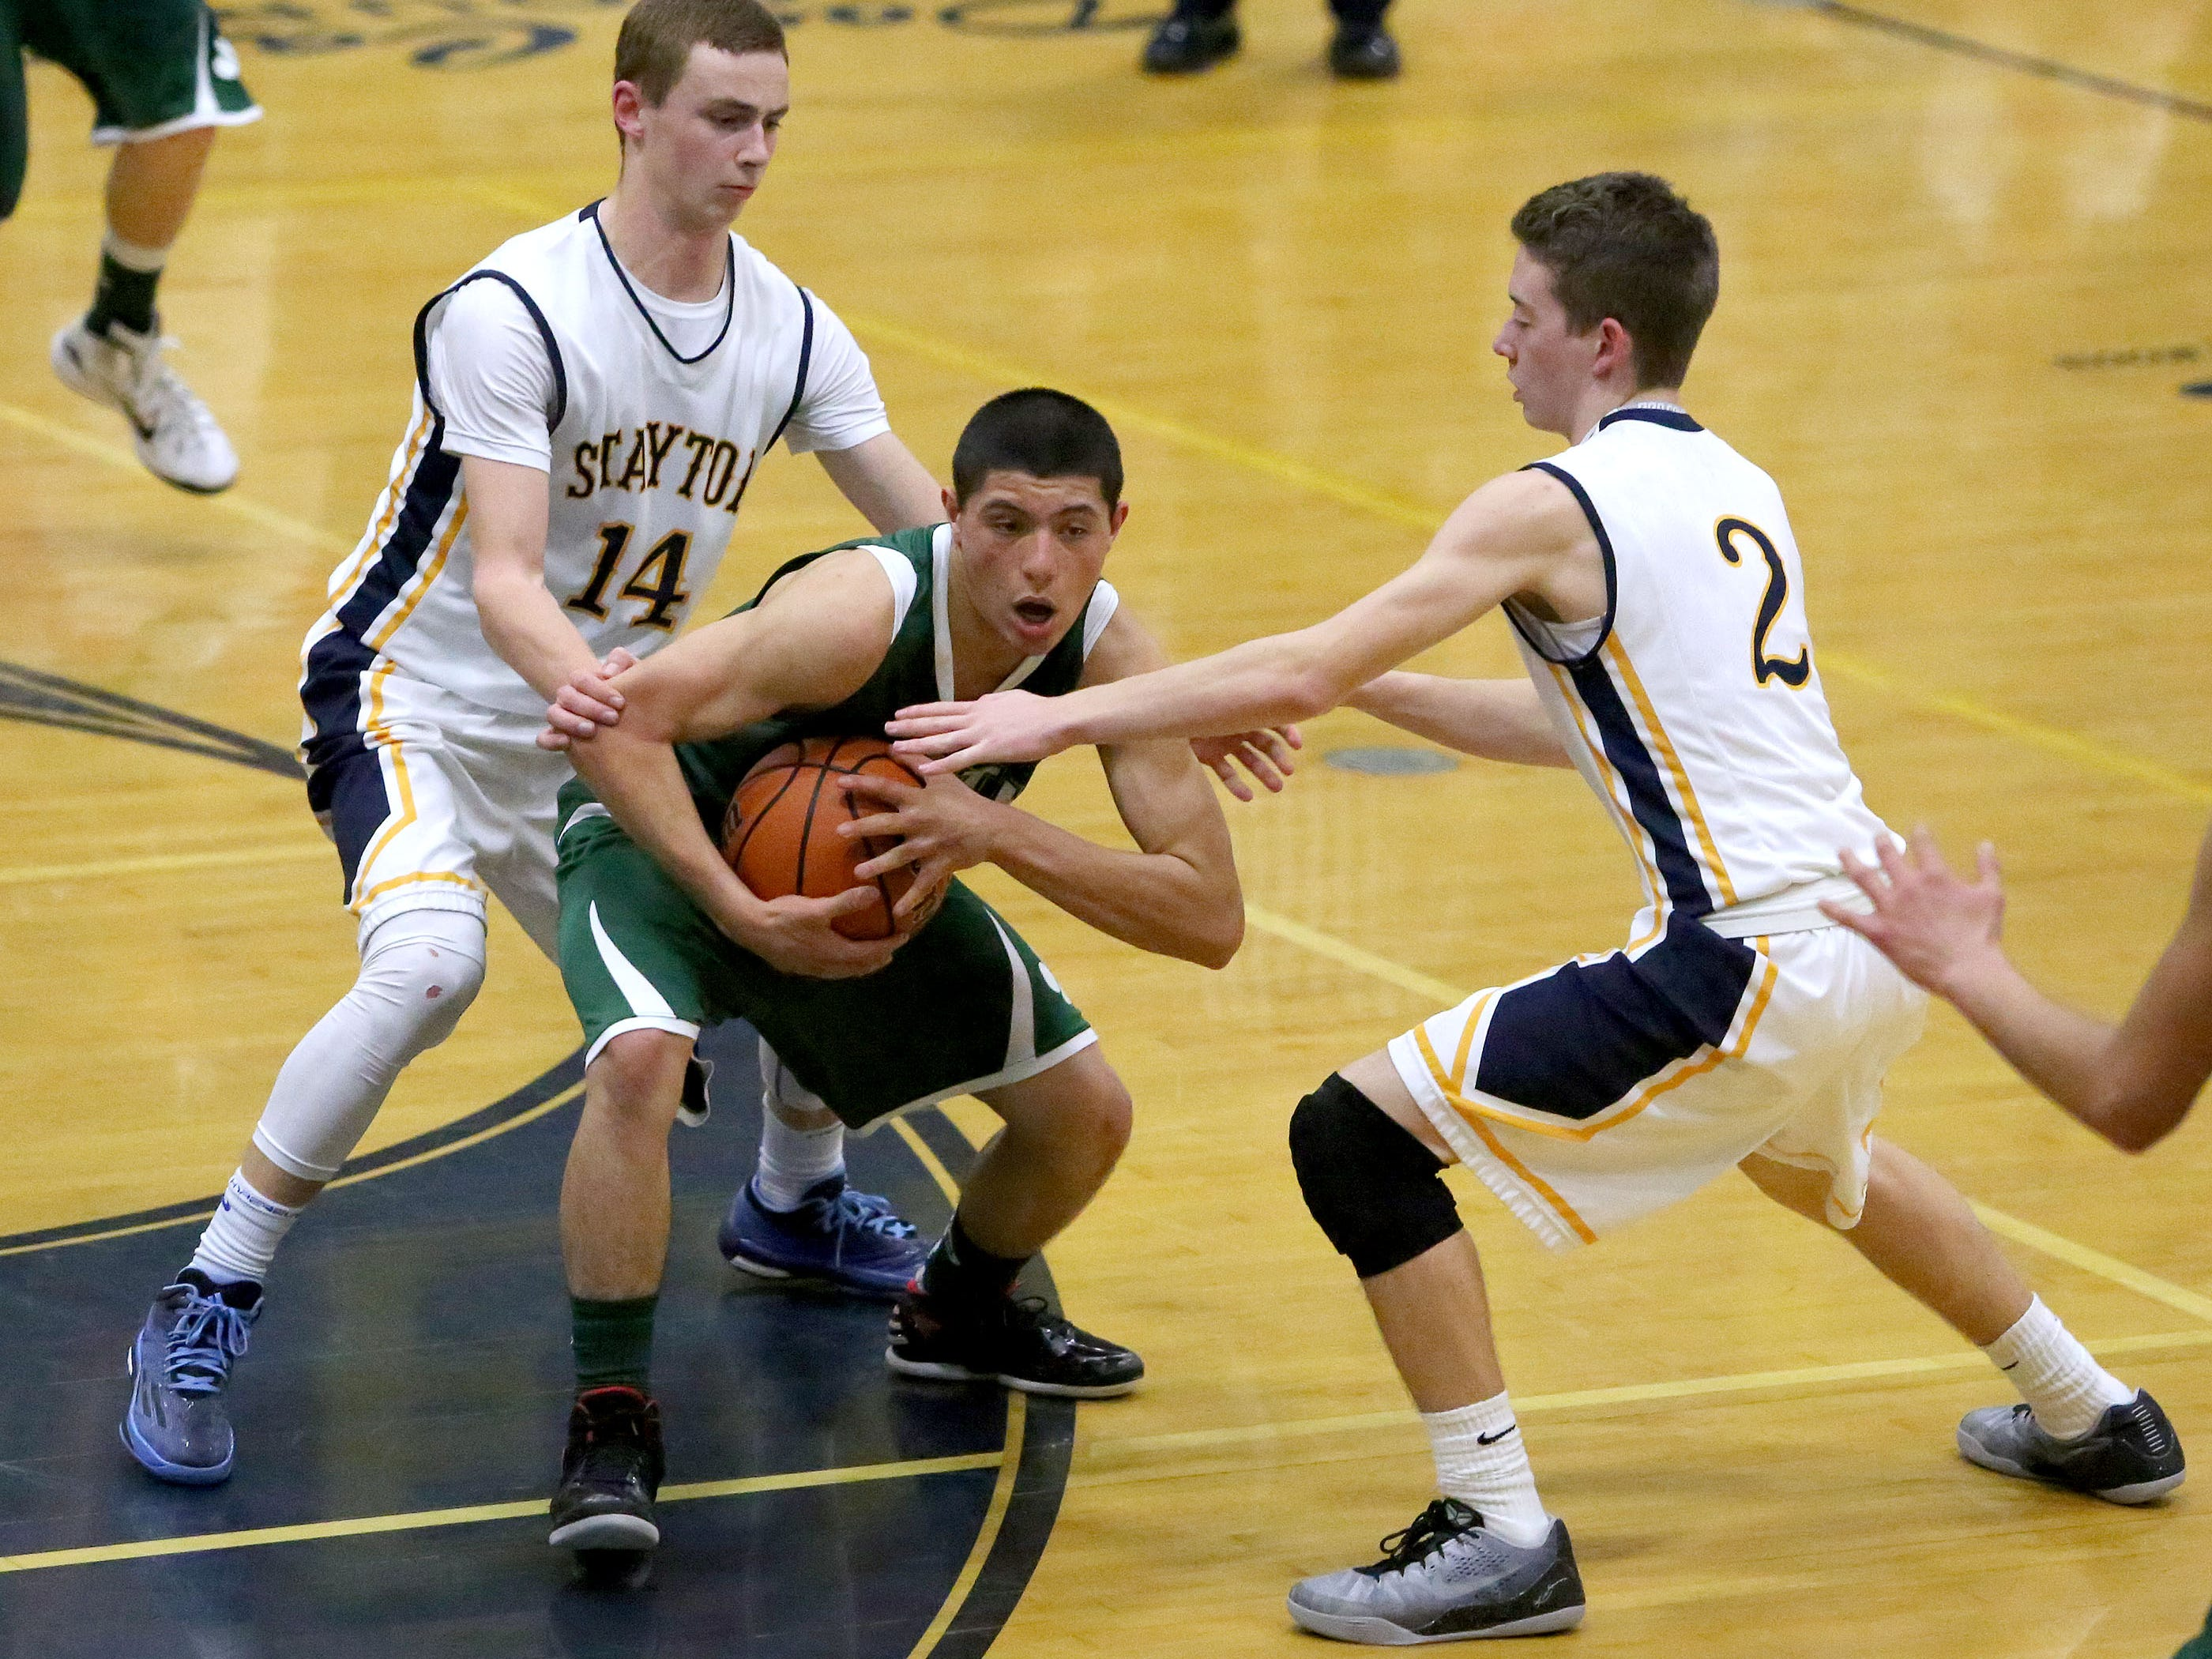 Stayton's Matt Lindeman (14) and Cade Nau (2) surround North Marion's Josiah Roman during their Oregon Western Conference game on Tuesday, Feb. 17 , 2015, in Stayton, Ore.